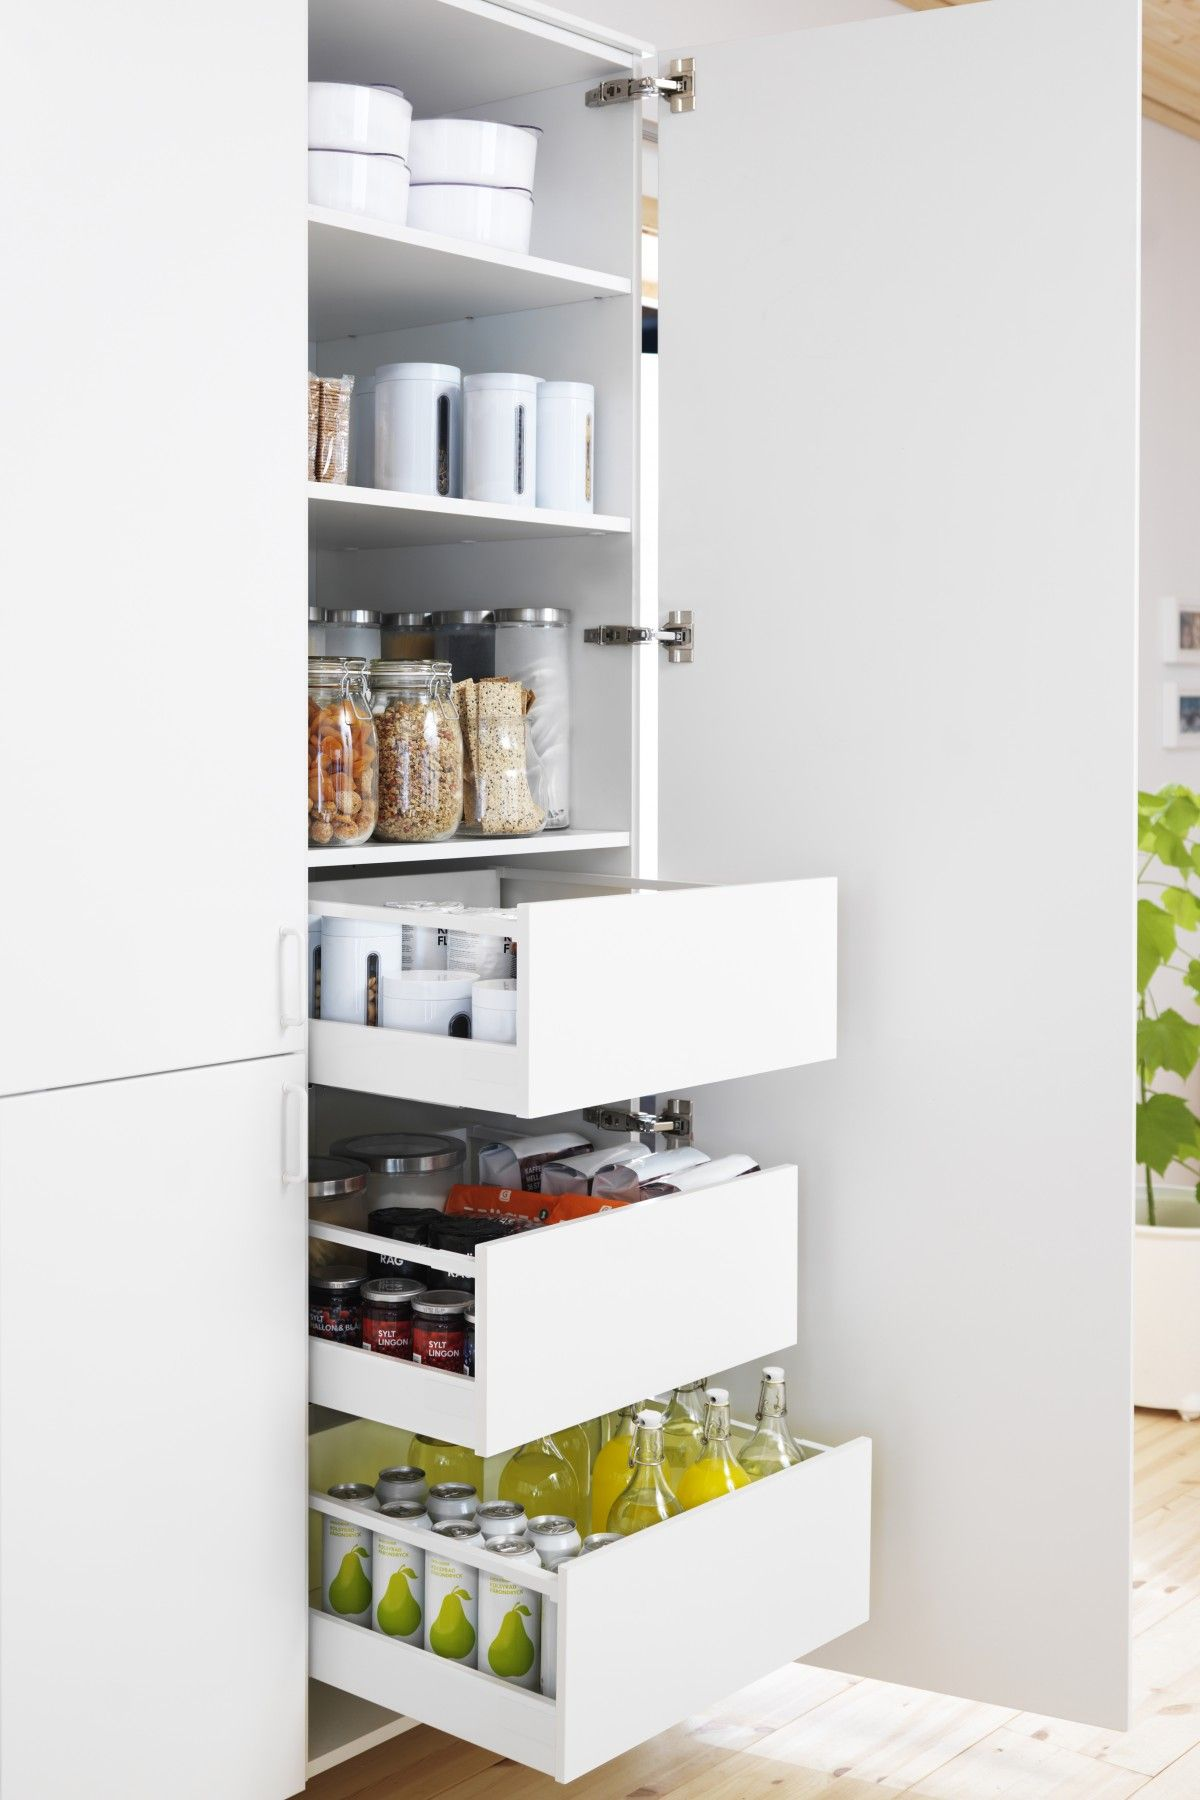 IKEA Is Totally Changing Their Kitchen Cabinet System. Hereu0027s What We Know  About SEKTION. U2014 IKEA Kitchen Intelligence